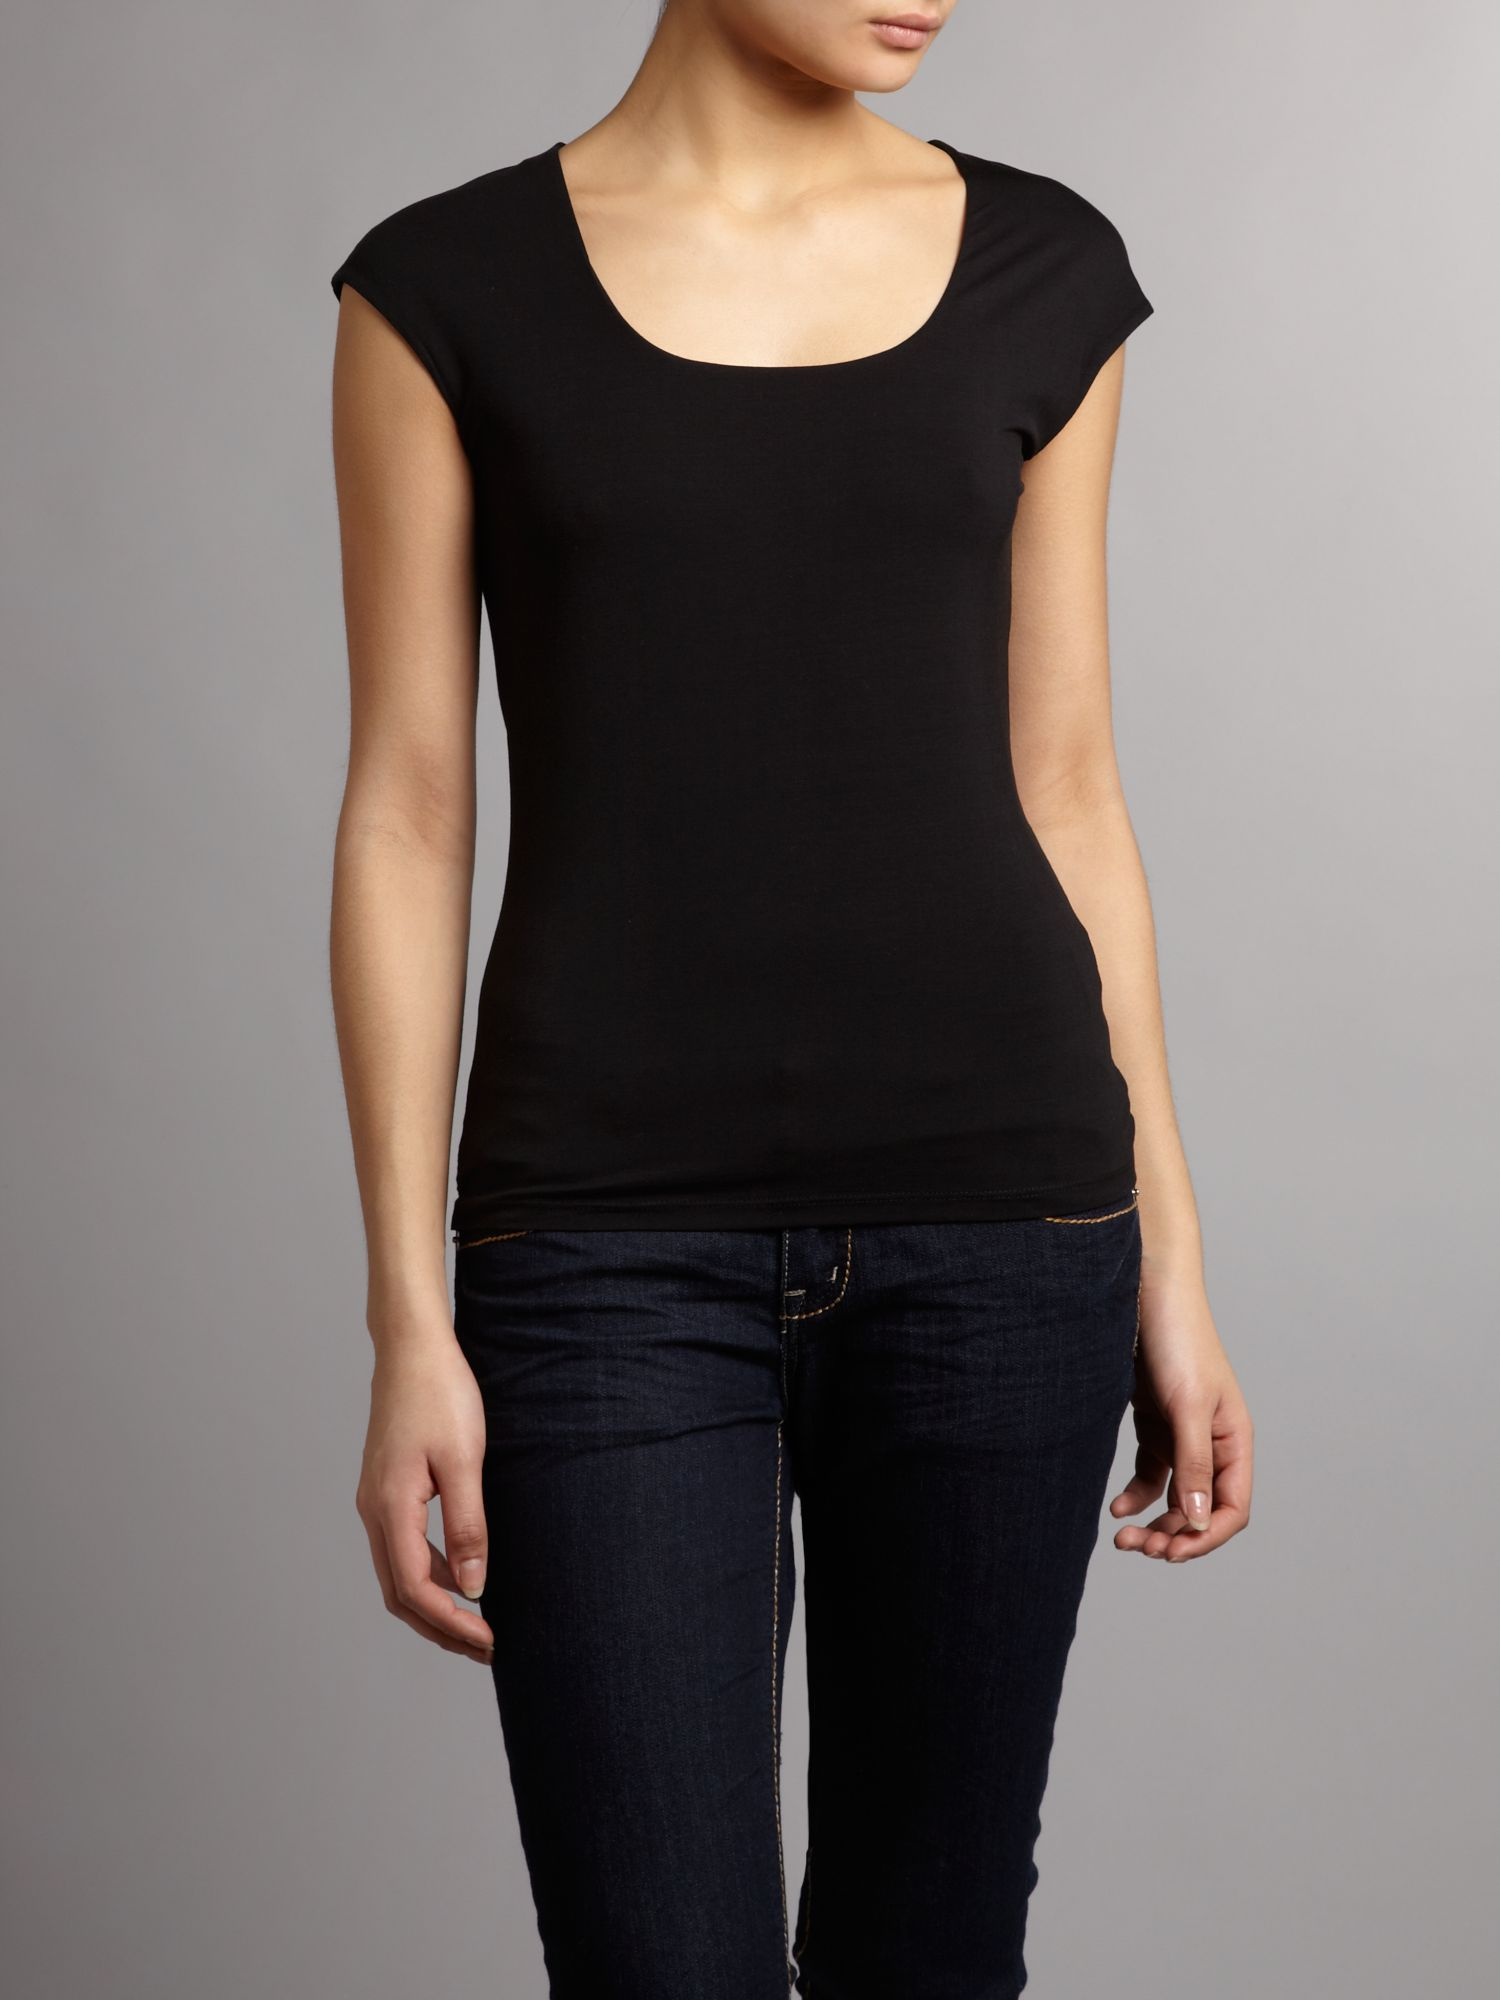 Square neck jersey top